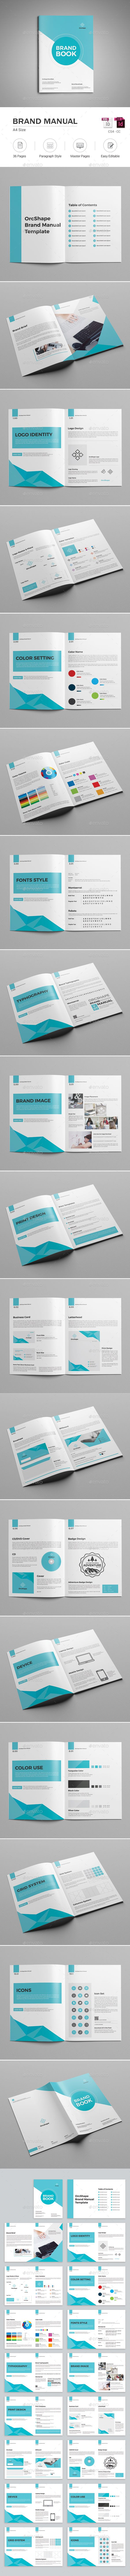 Brand Maunal Template InDesign INDD